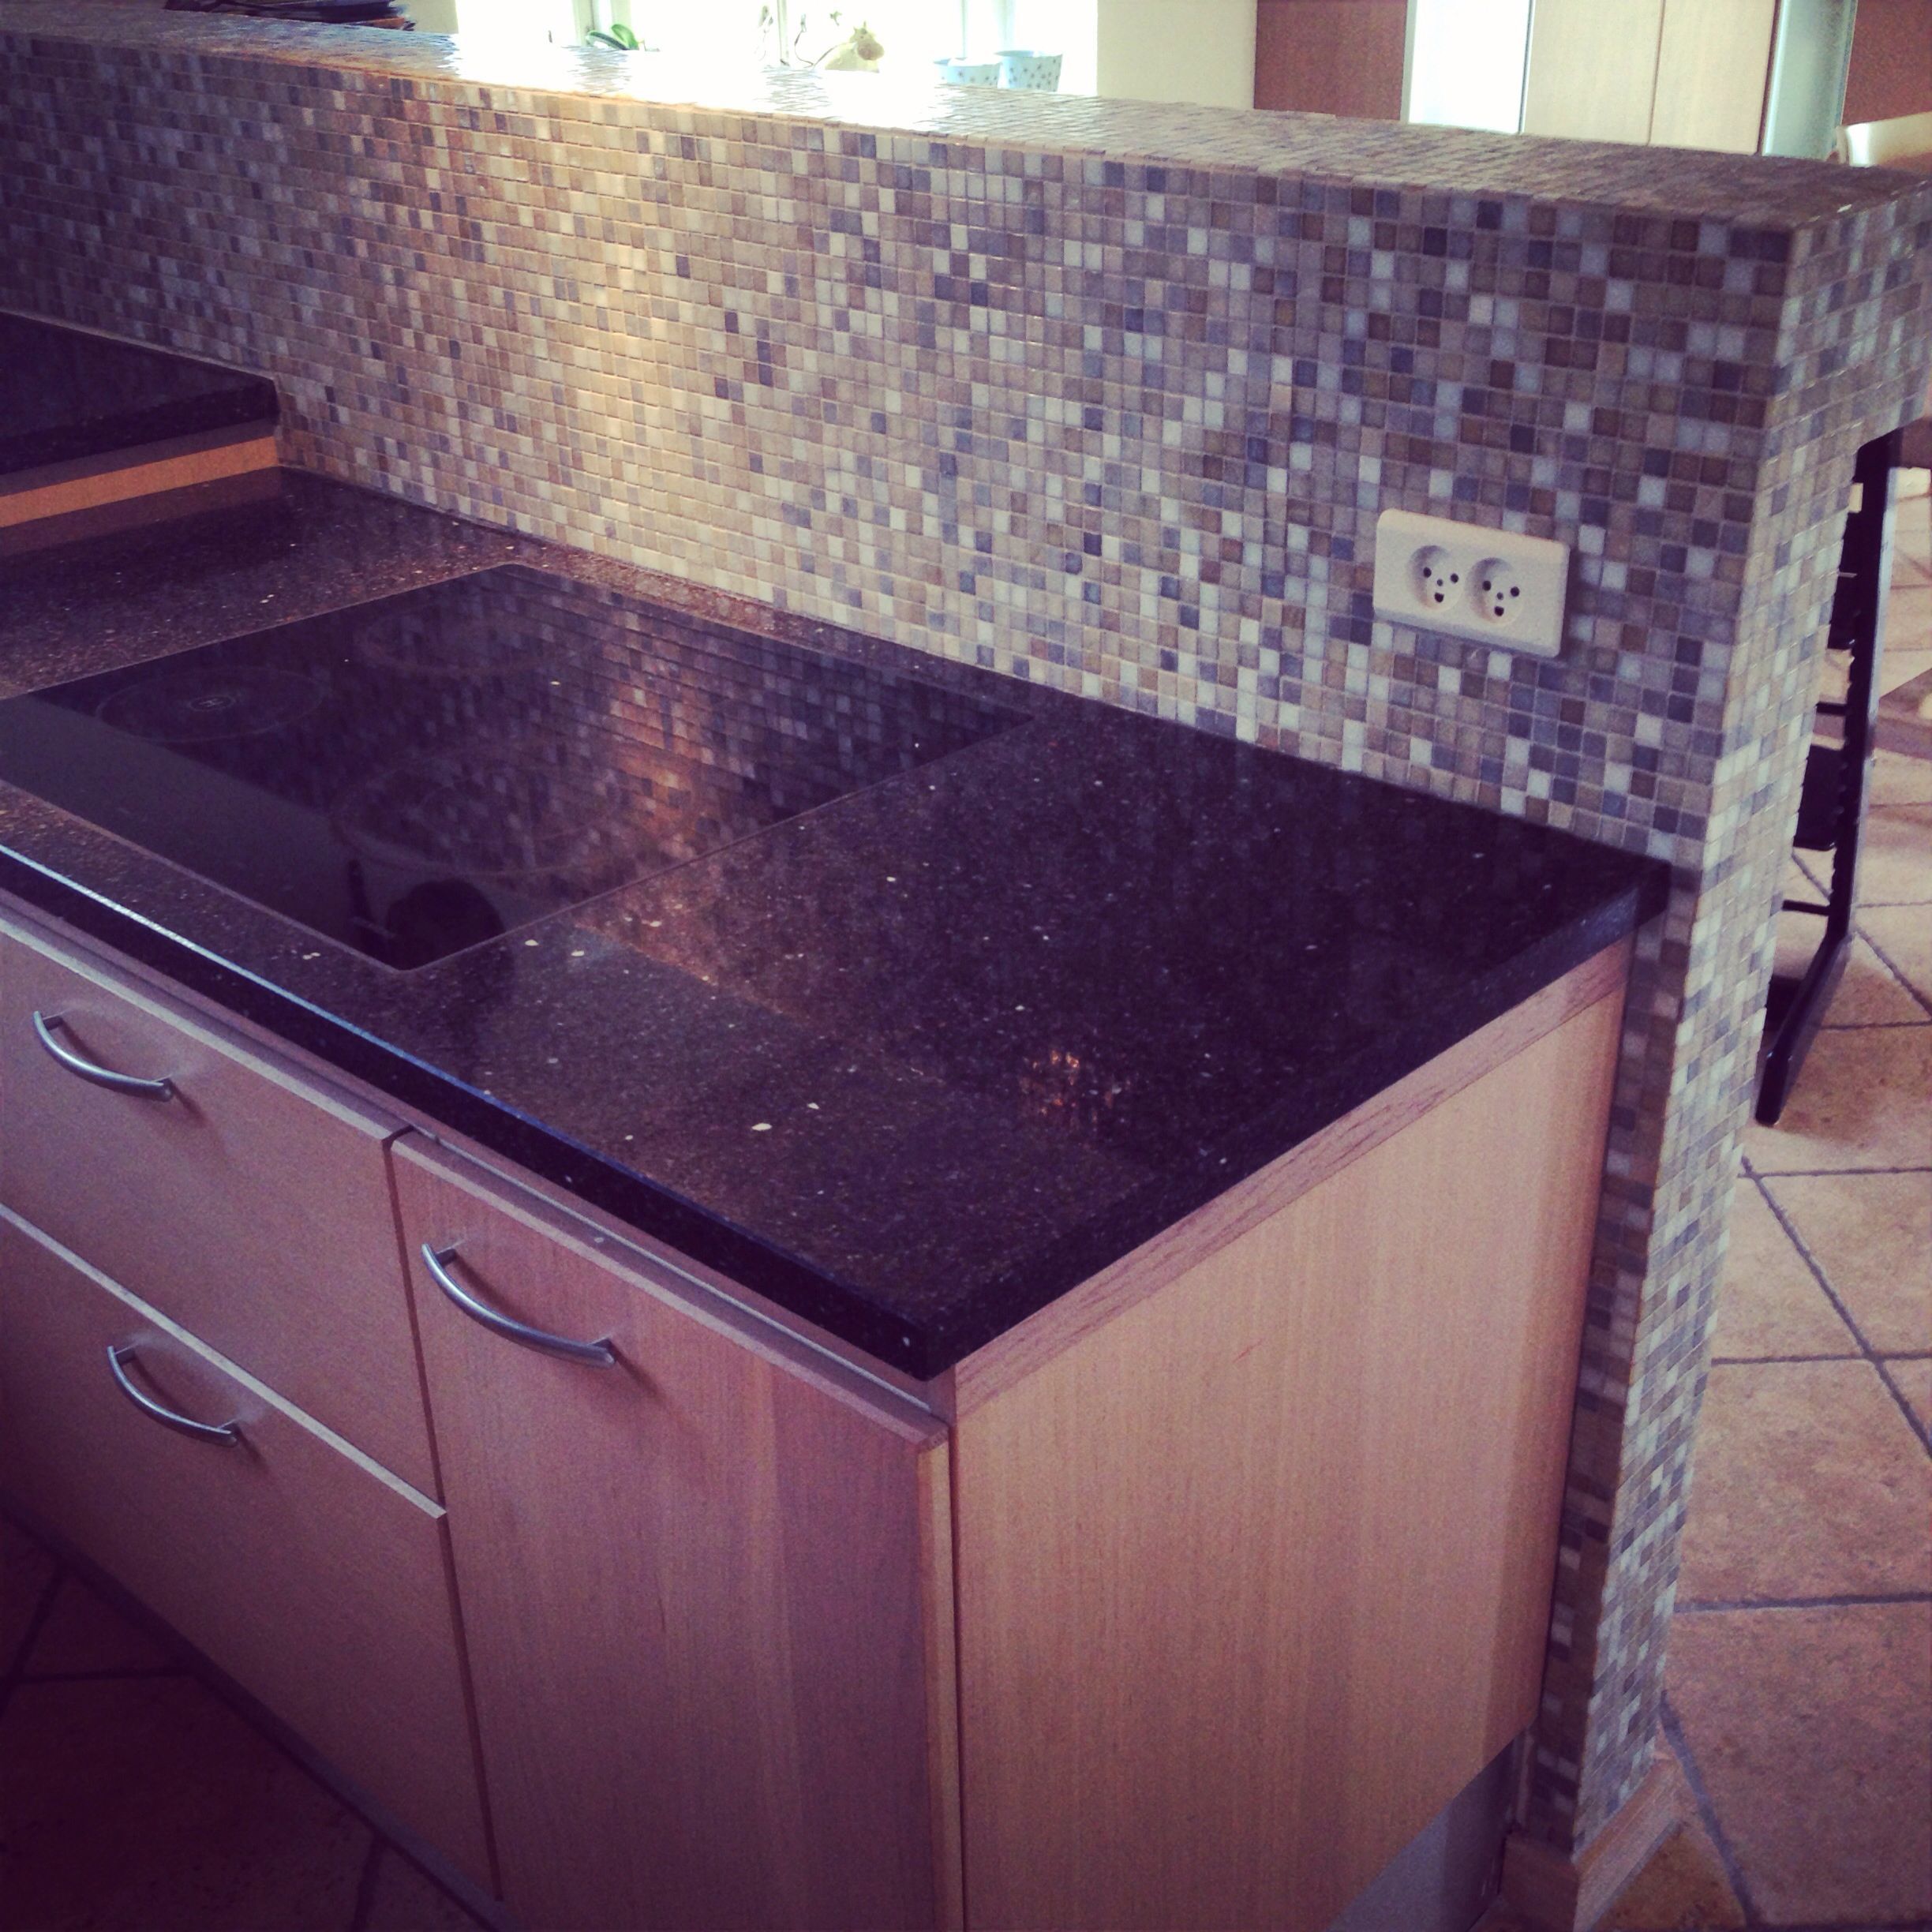 #Mosaik #tiles on our #kitchen wall. Love the colors